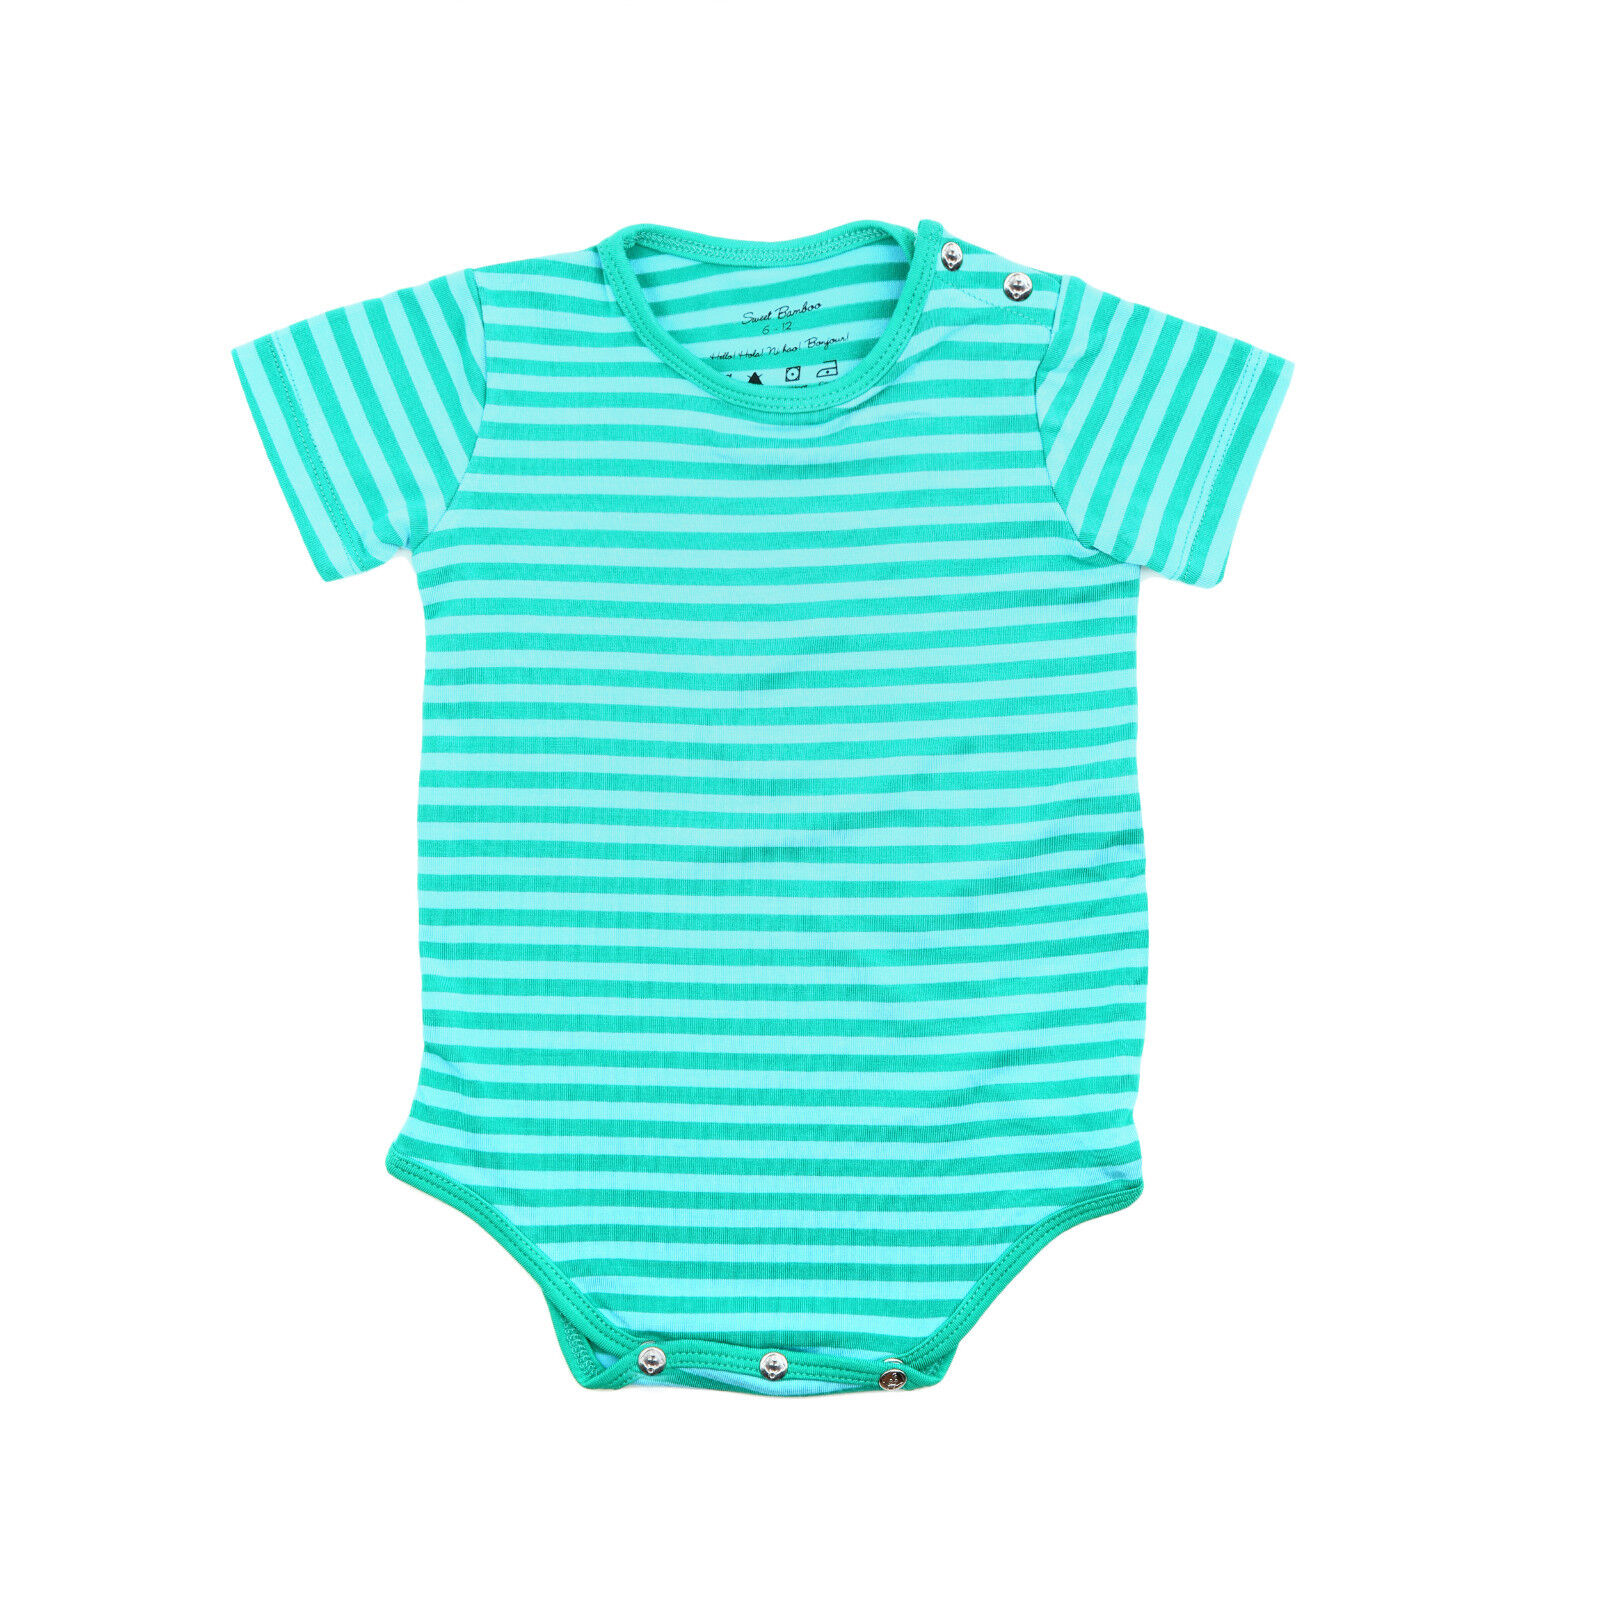 Sweet Bamboo Body Suit | Green Stripe | 12-18mo | Brand New